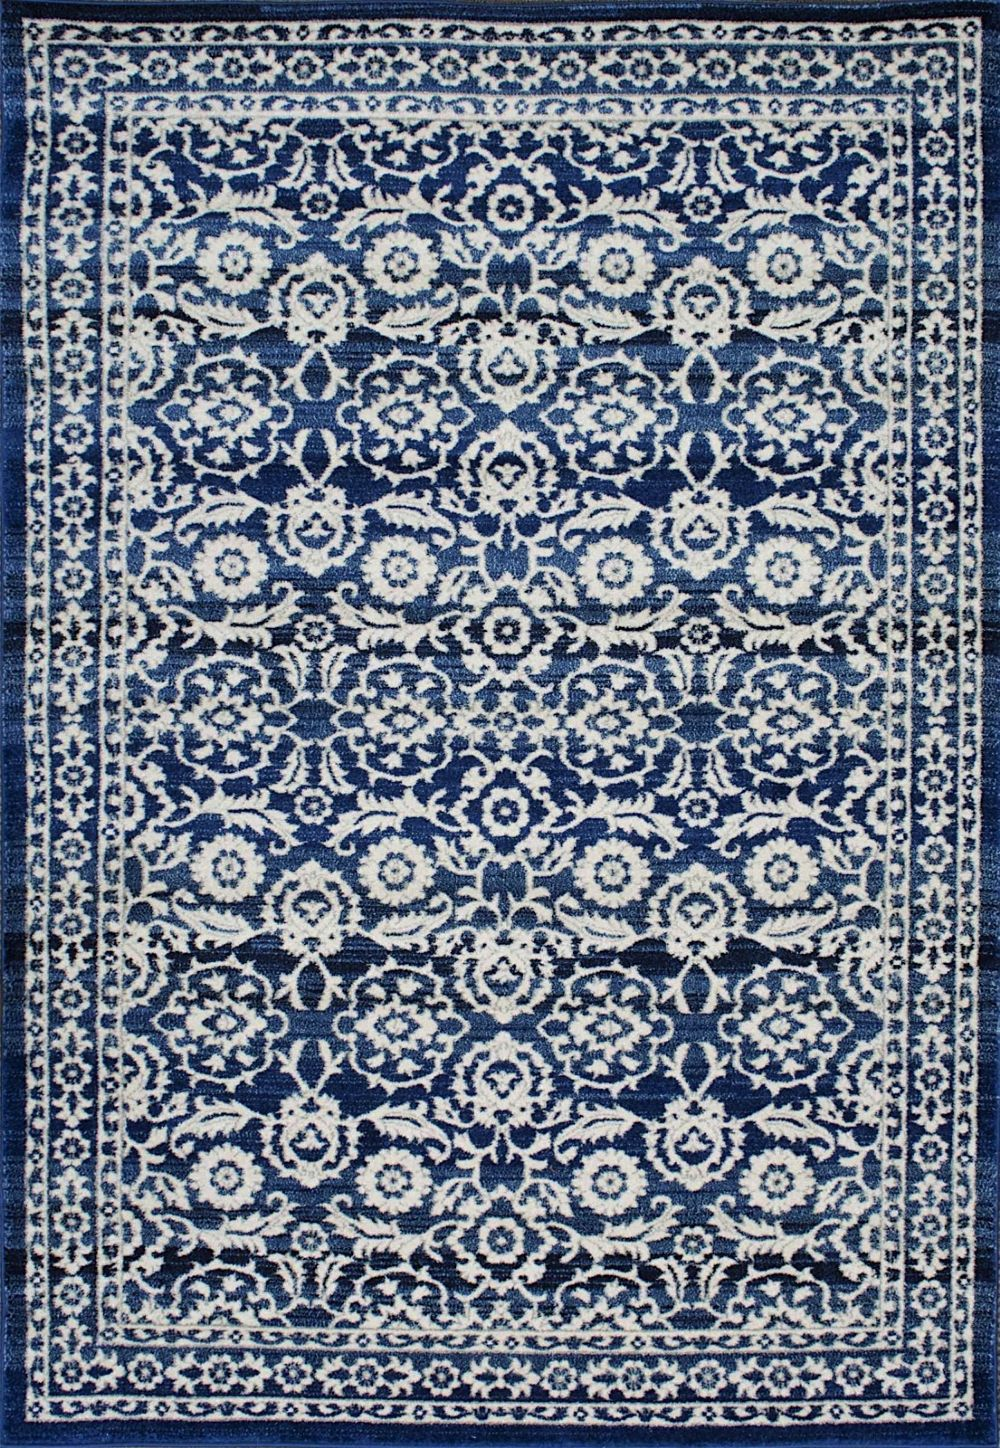 nuloom turnbull country & floral area rug collection